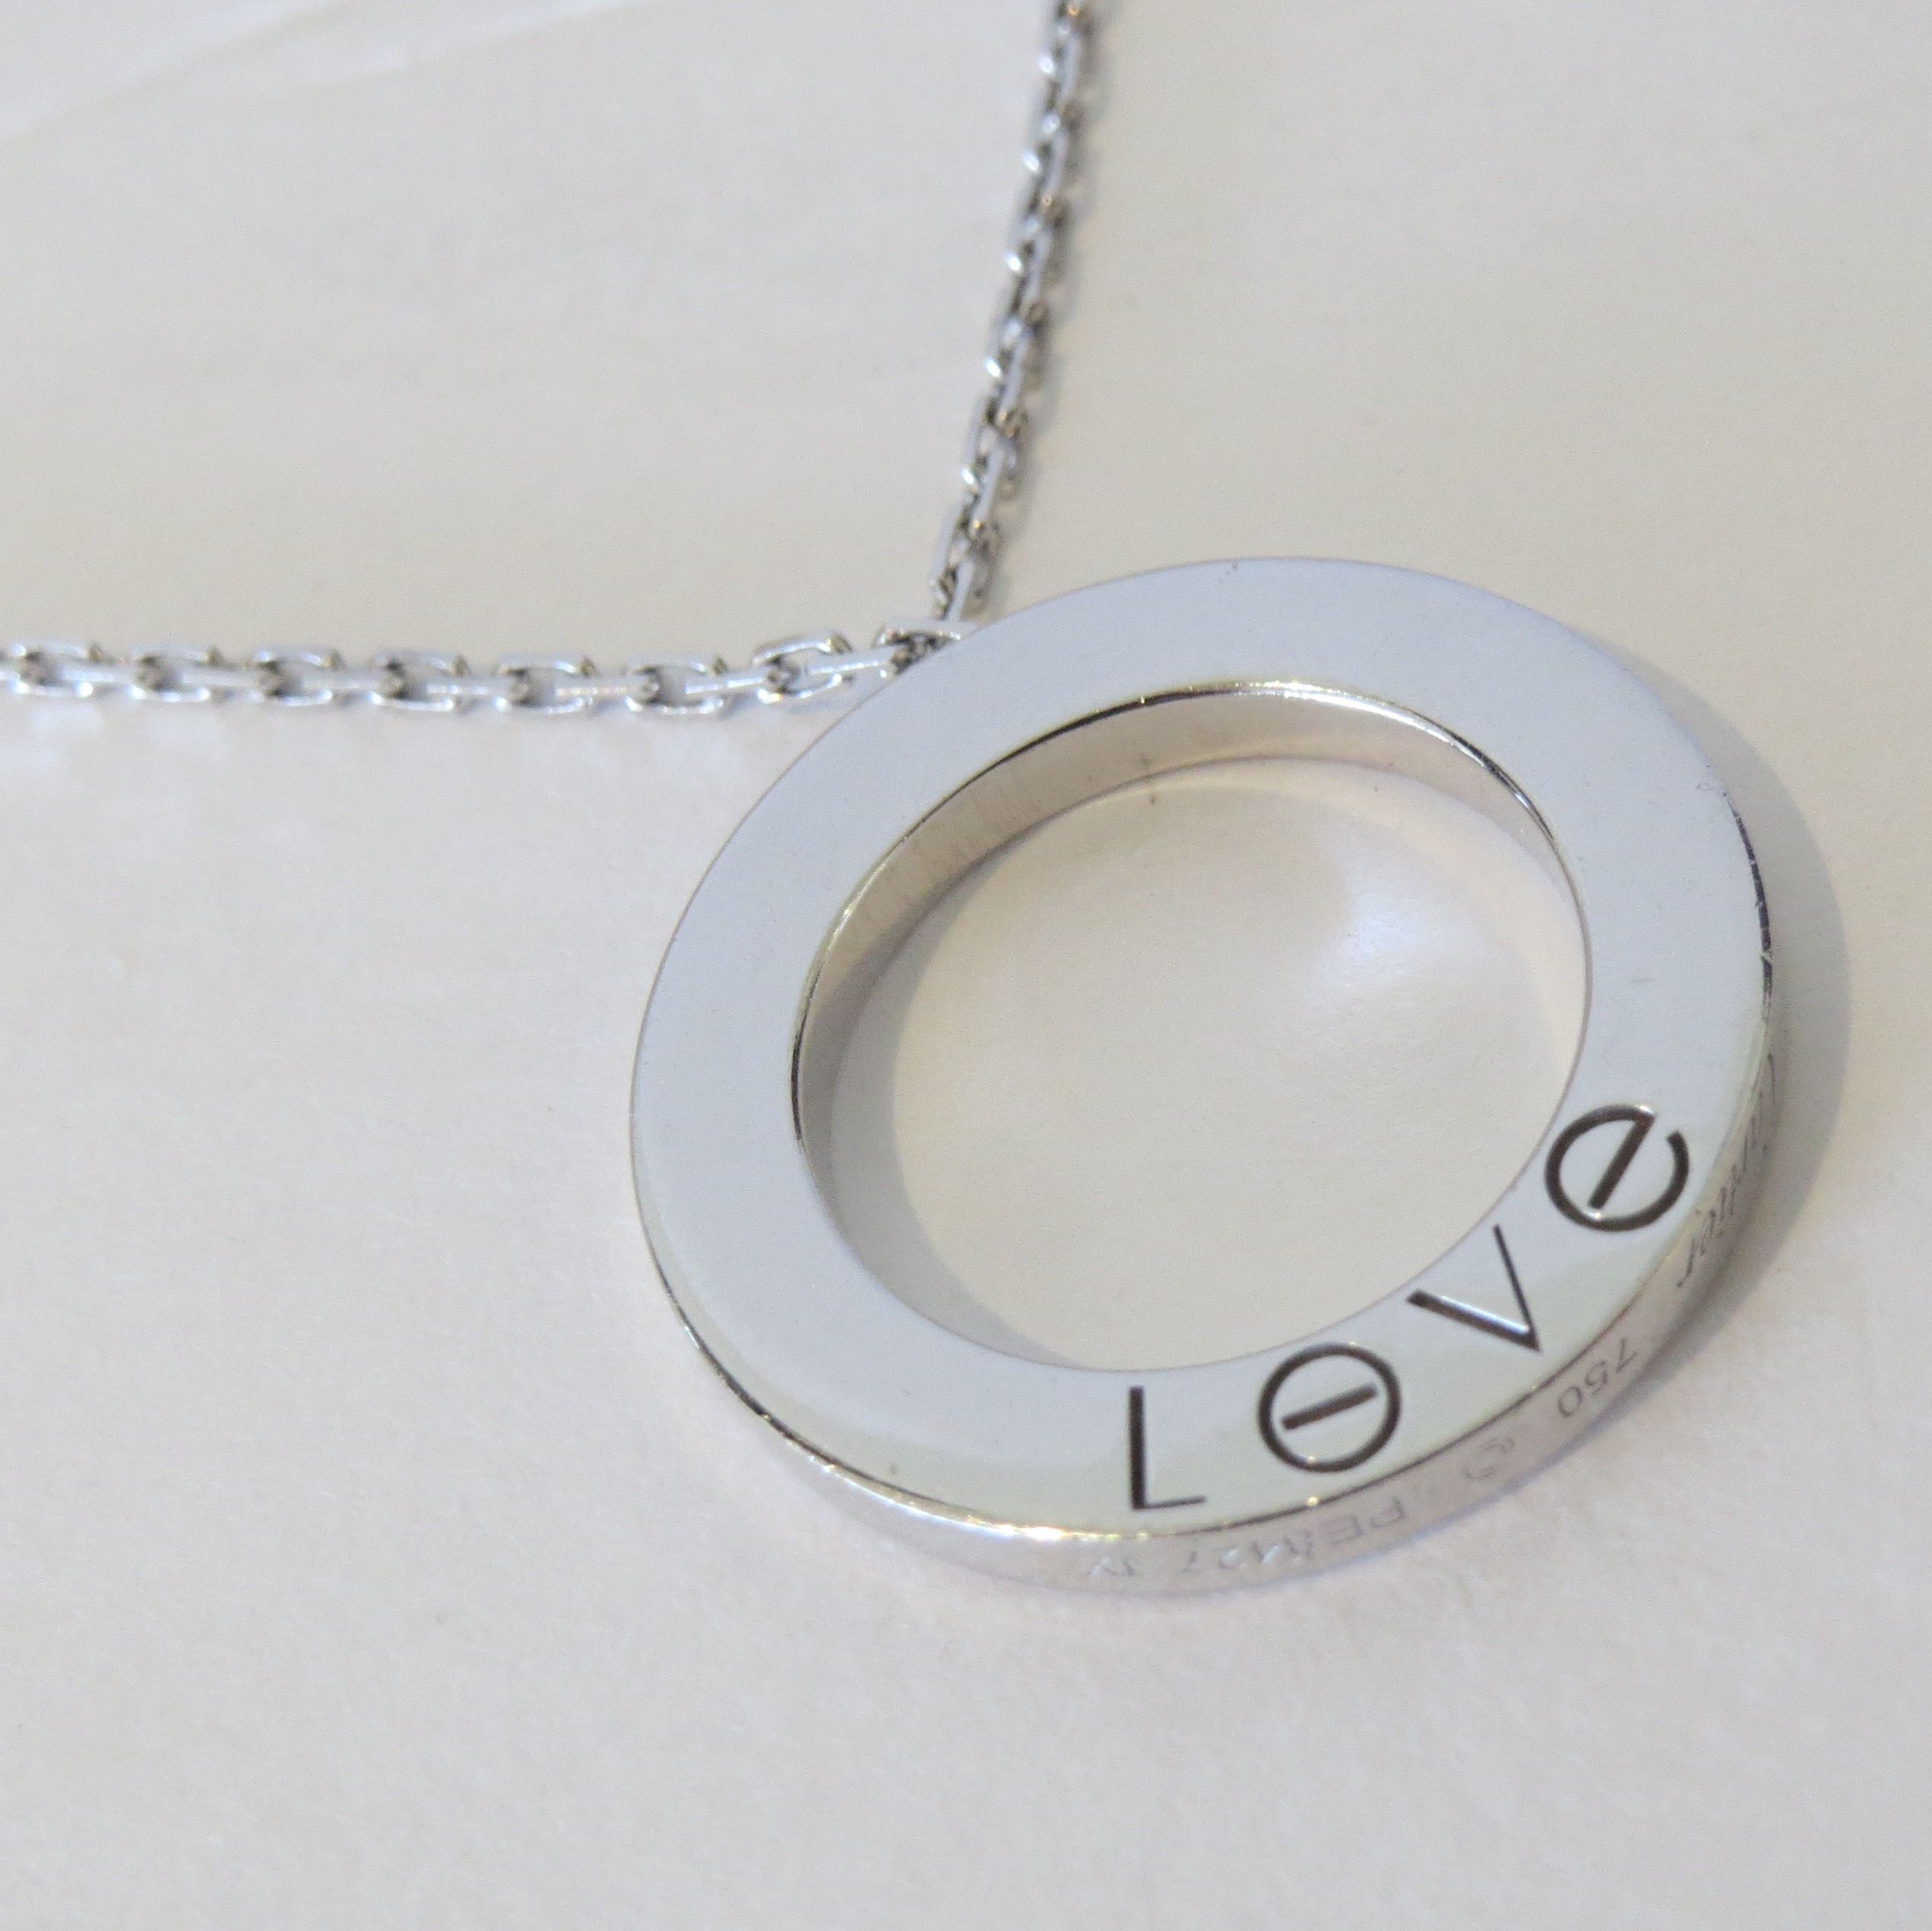 Cartier love pendant necklace in white gold a forever piece of cartier love pendant necklace in white gold a forever piece of luxury brand aloadofball Choice Image